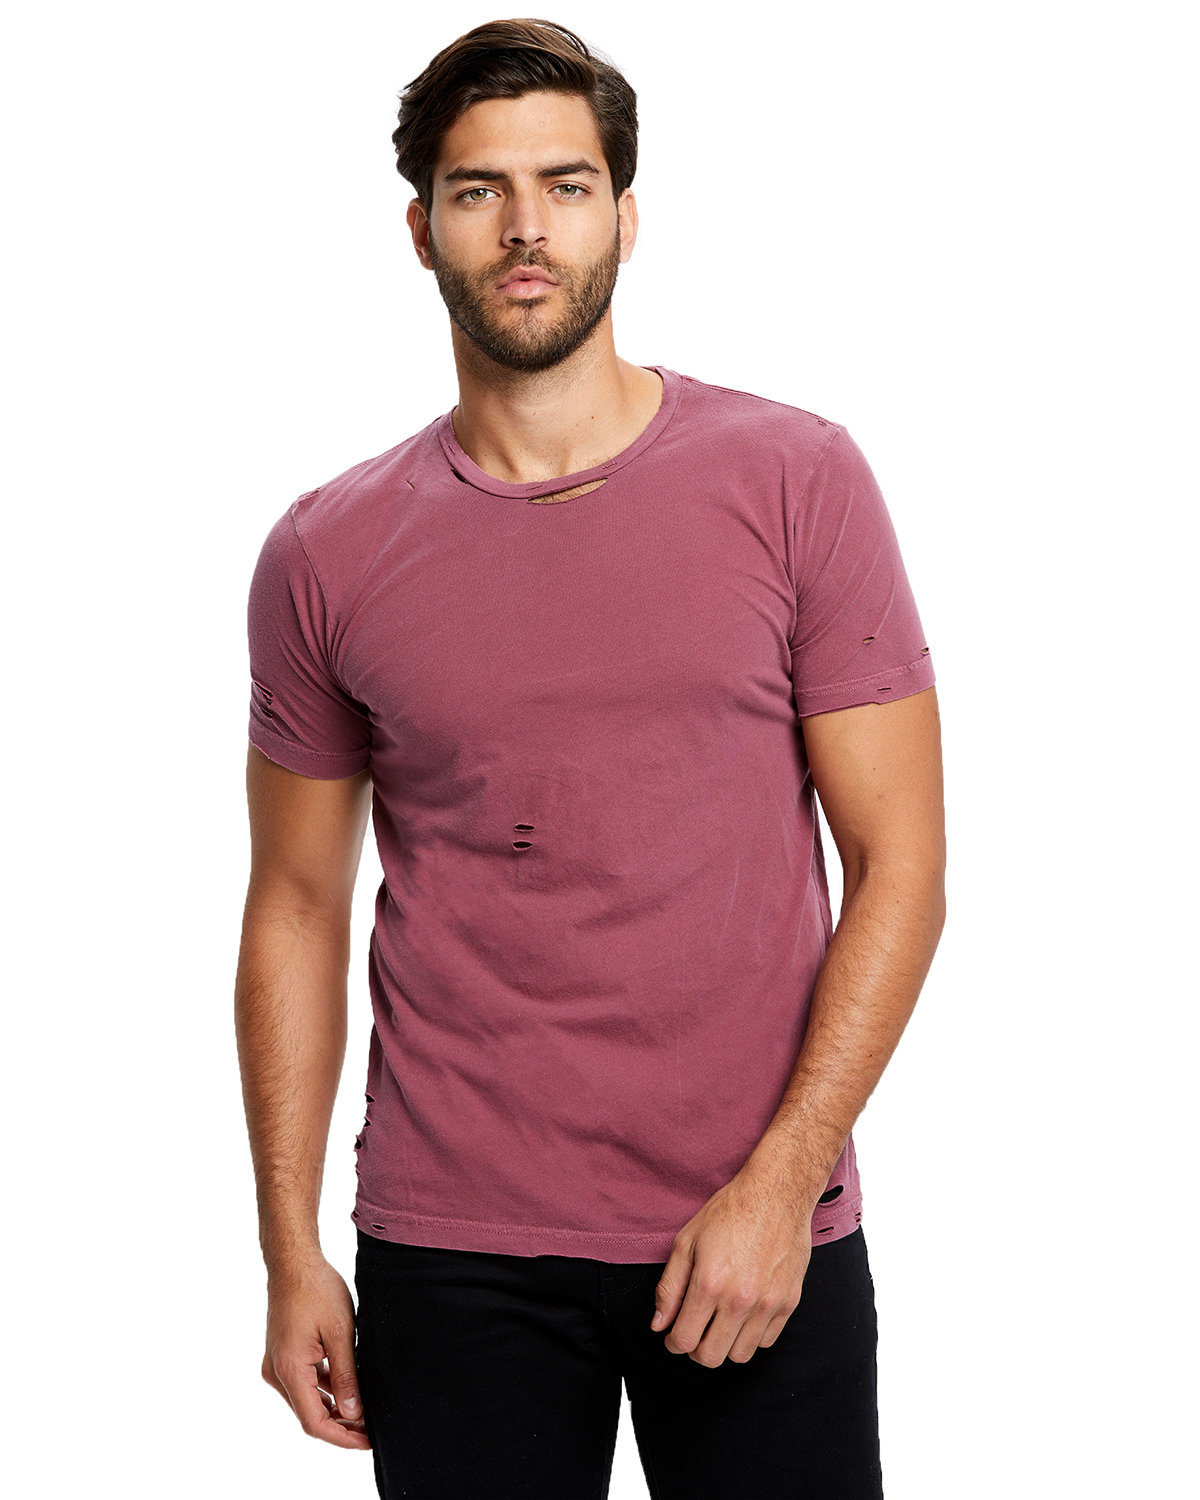 US Blanks Unisex Pigment-Dyed Destroyed T-Shirt PIGMENT MAROON